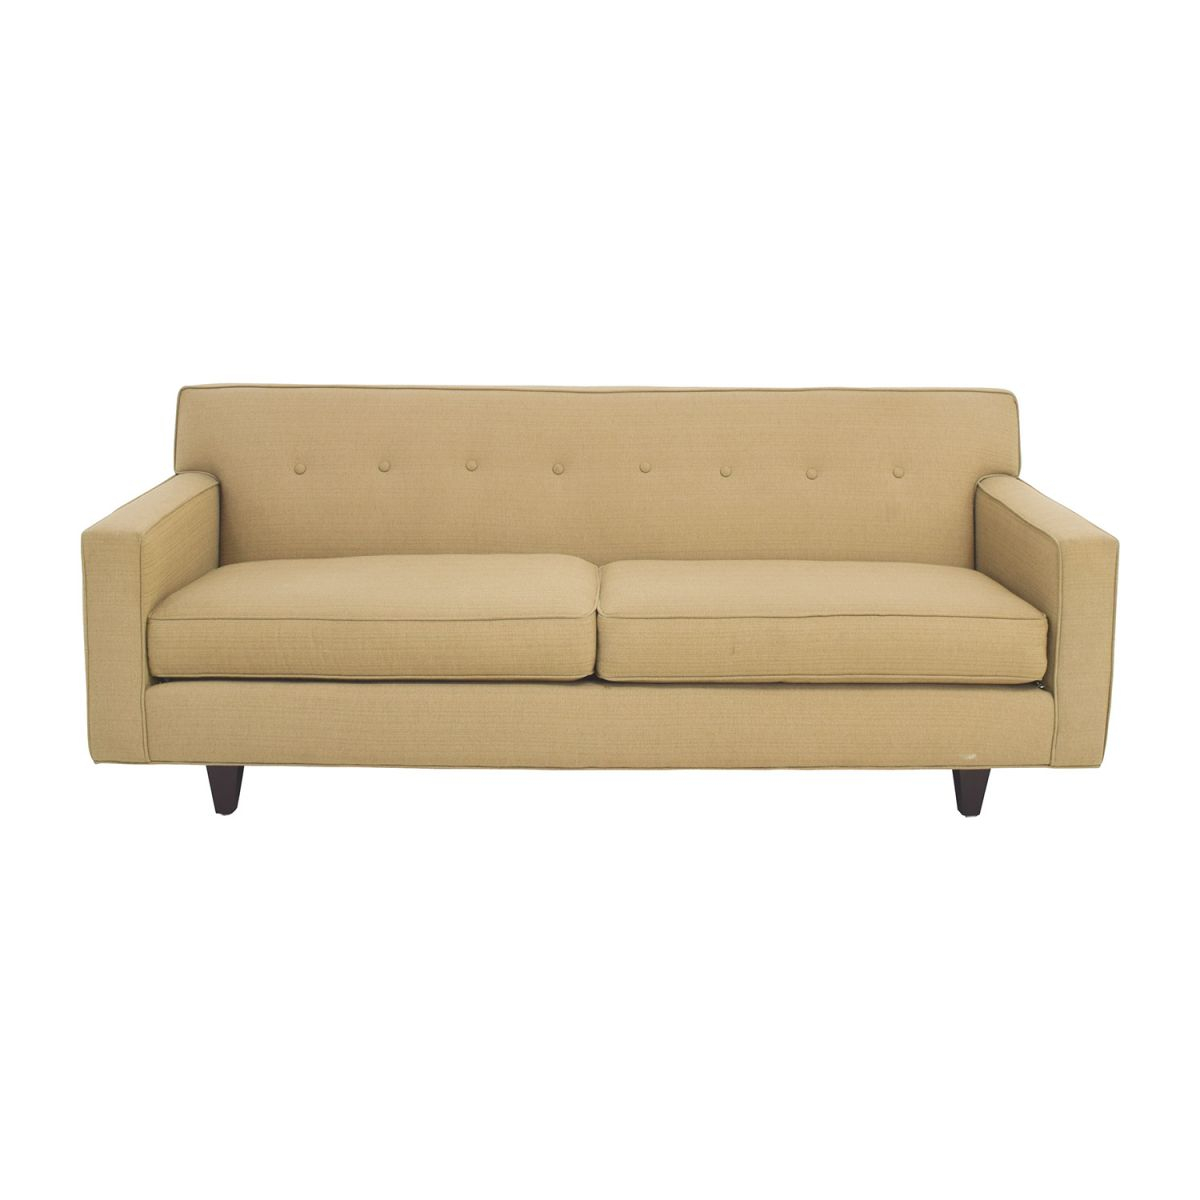 Decorating: Make Your Living Room More Comfy With Discount for Lovely Raymour And Flanigan Sleeper Sofa